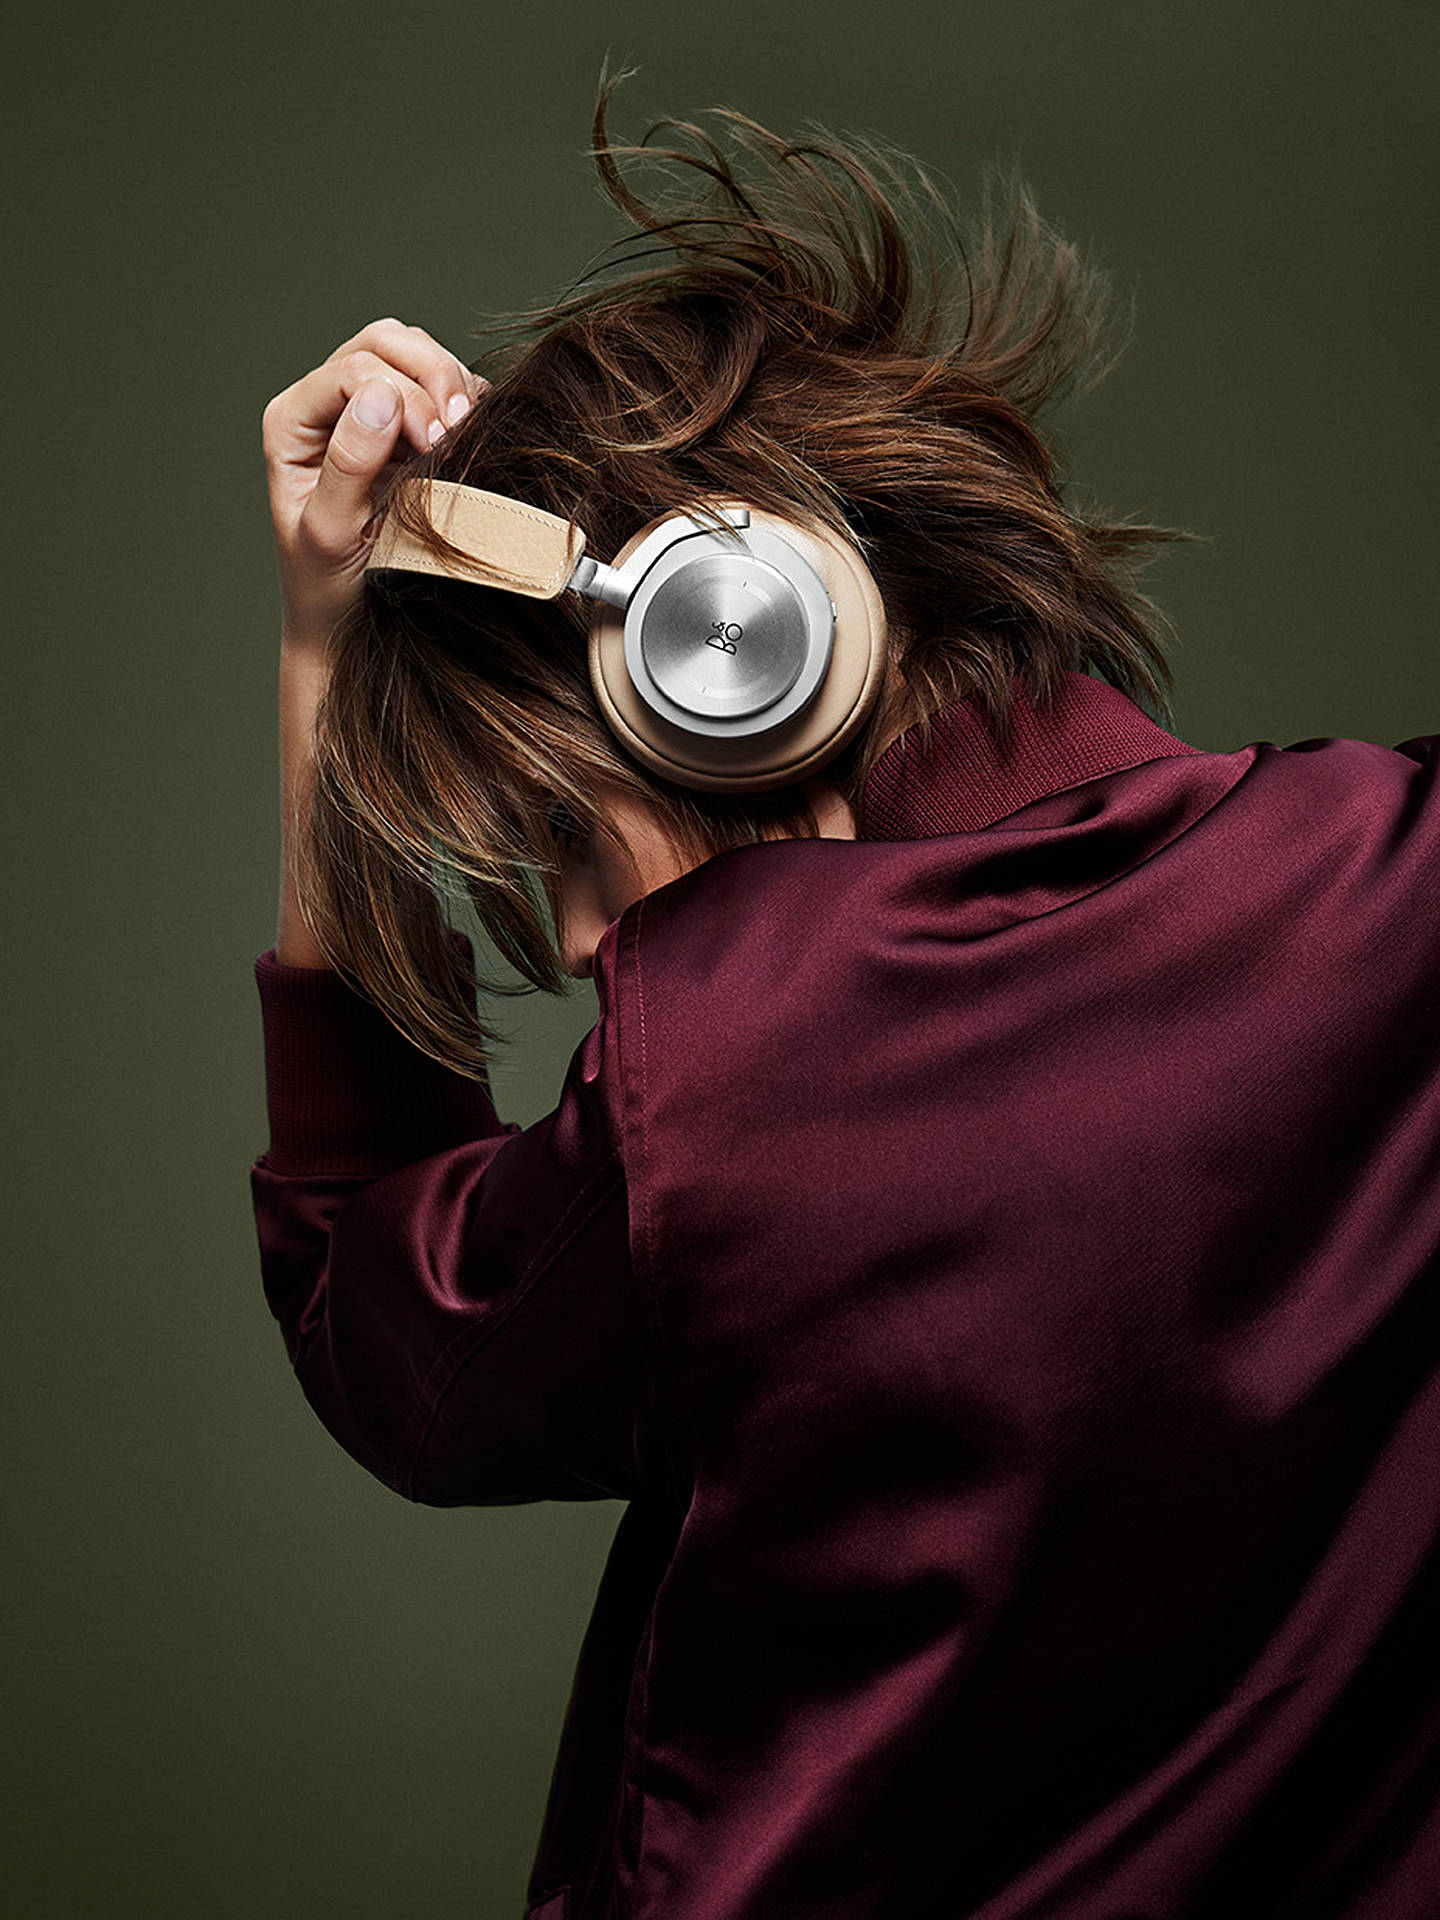 ... BuyB&O PLAY by Bang & Olufsen Beoplay H7 Wireless Bluetooth Over-Ear Headphones with Intuitive